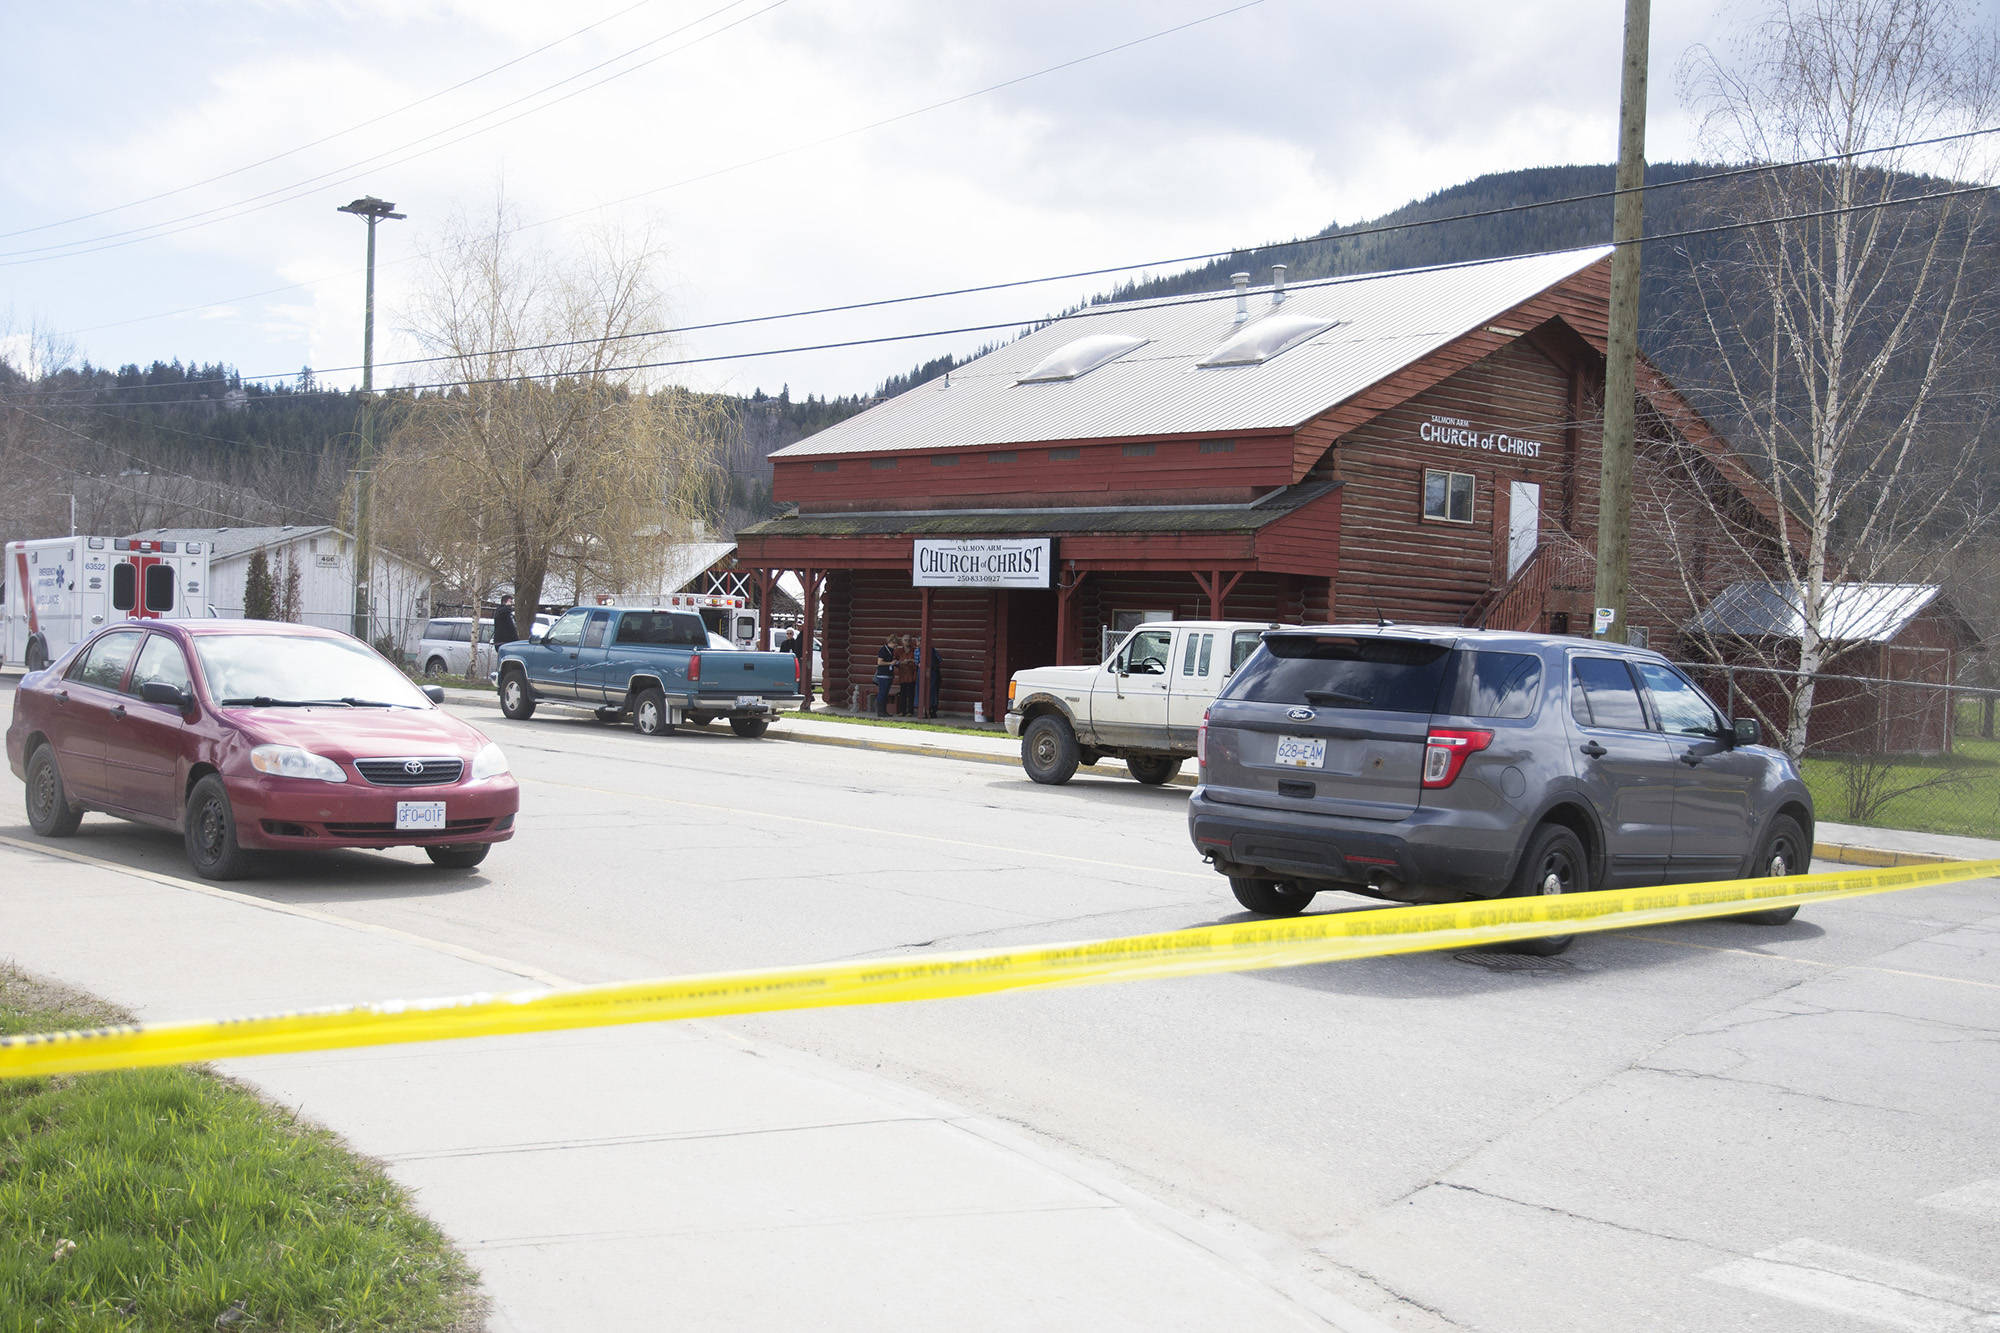 UPDATE: Family confirms man killed in shooting at Salmon Arm church